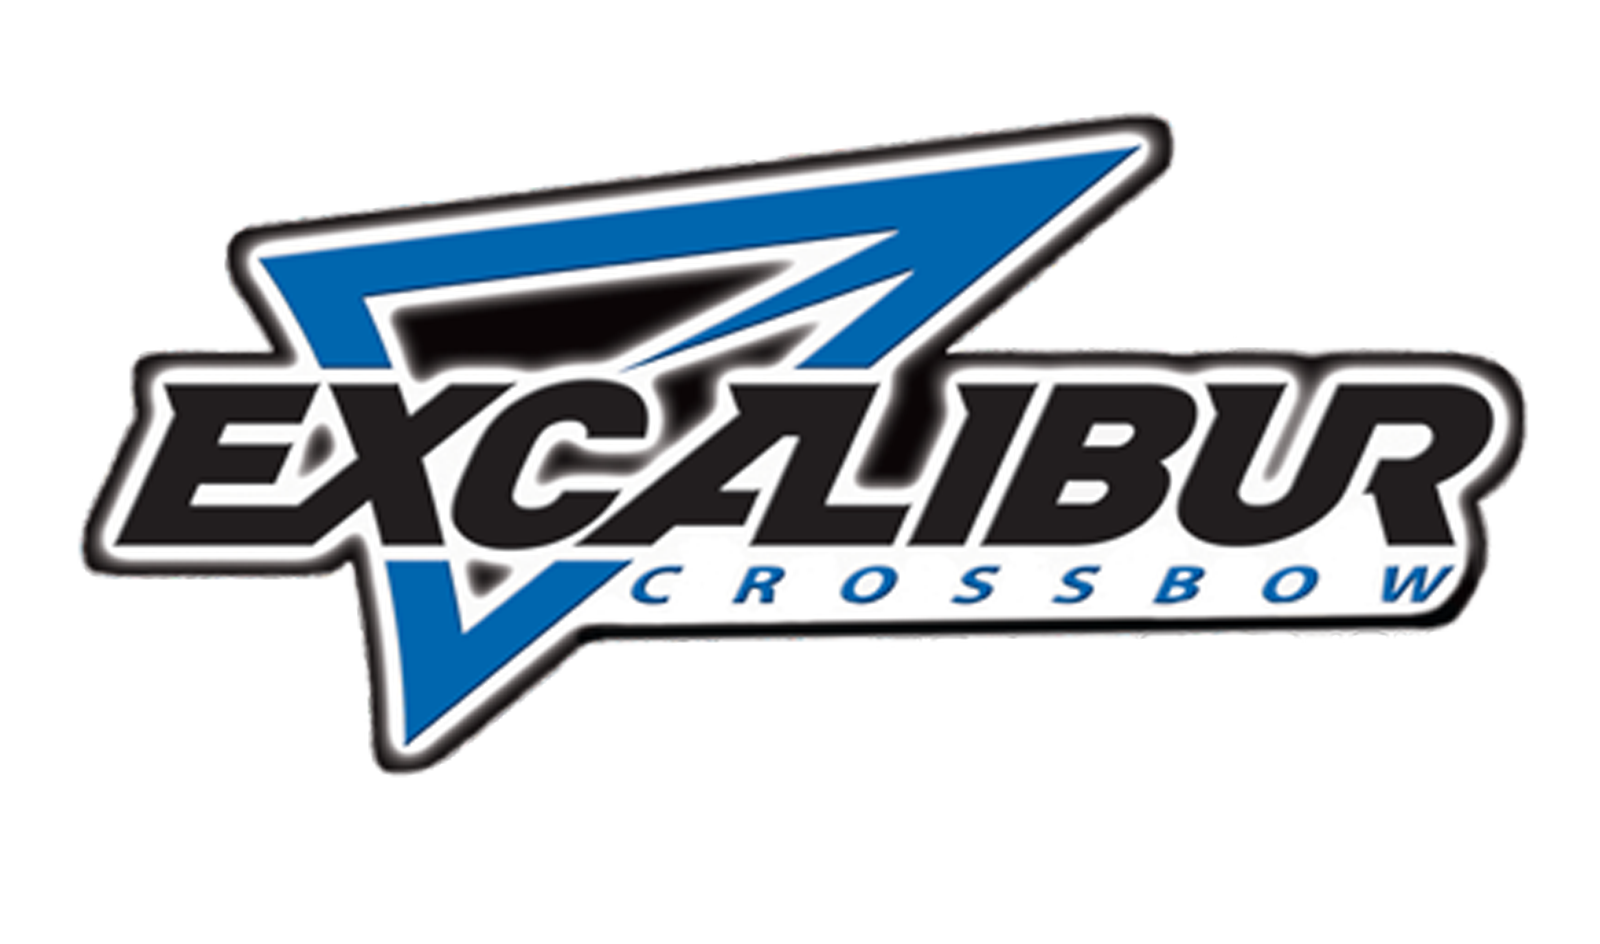 Excal-sticker-no-background2.png